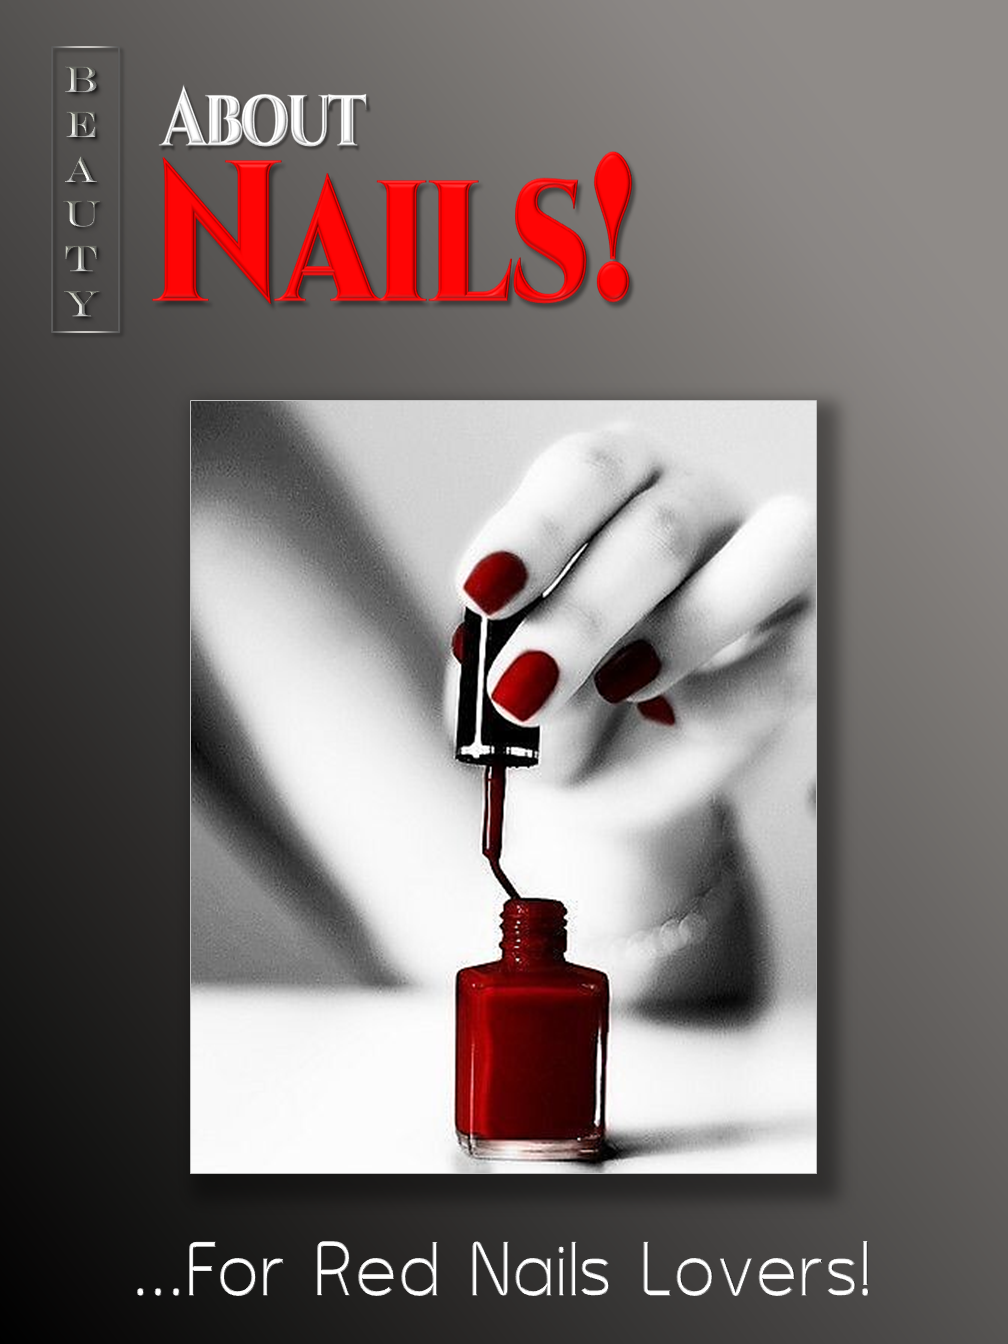 About Nails